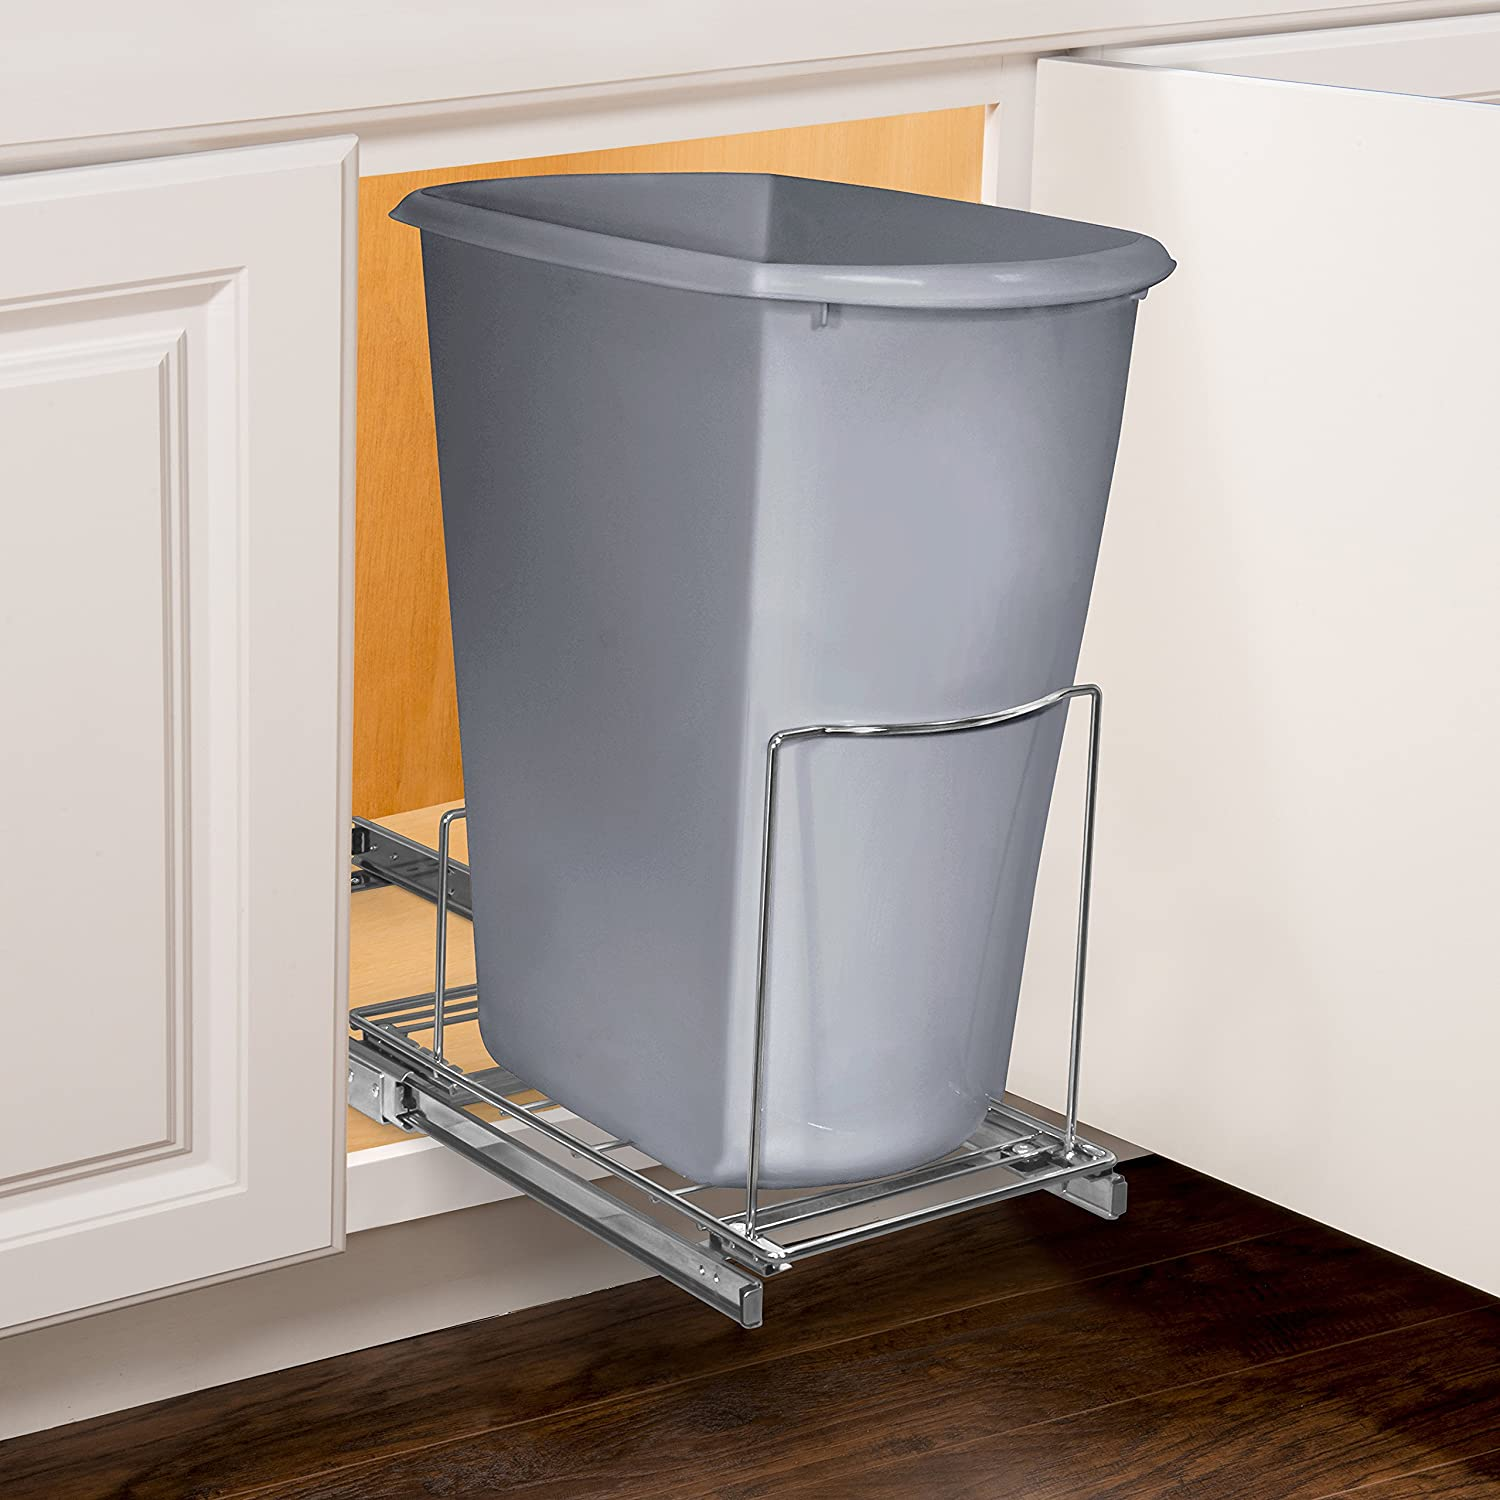 Lynk 430101DS Professional Bin Holder-Pull Out Under Cabinet Sliding Organizer-10.1 Wide x 20.02 inch deep, 10.1w x 20.25d x 11.25h-inch, Chrome